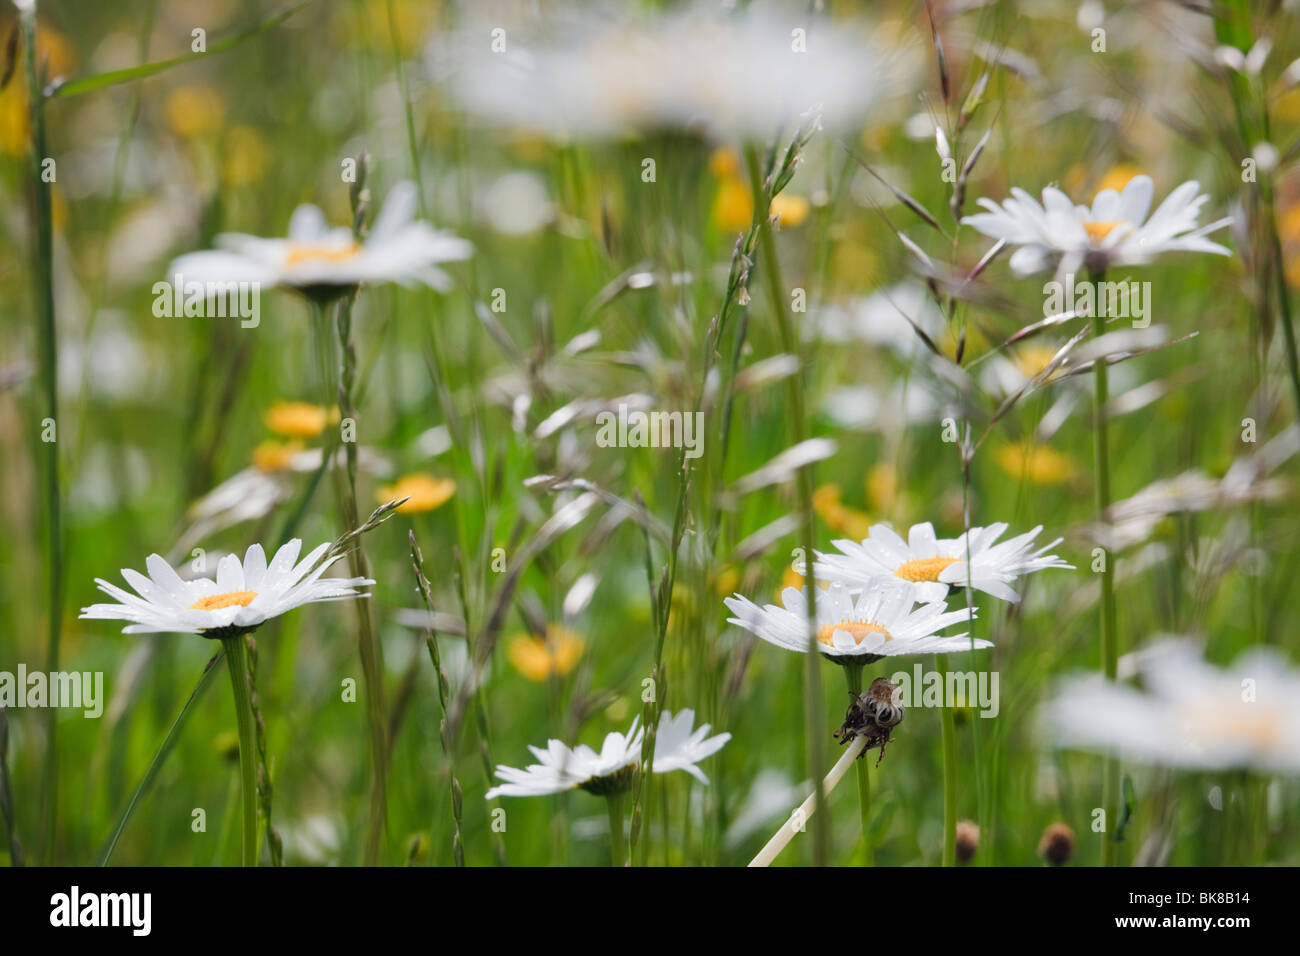 Europe. Ox-eye Daisies (Leucanthemum vulgare) growing with wild grasses in a wildflower meadow Stock Photo